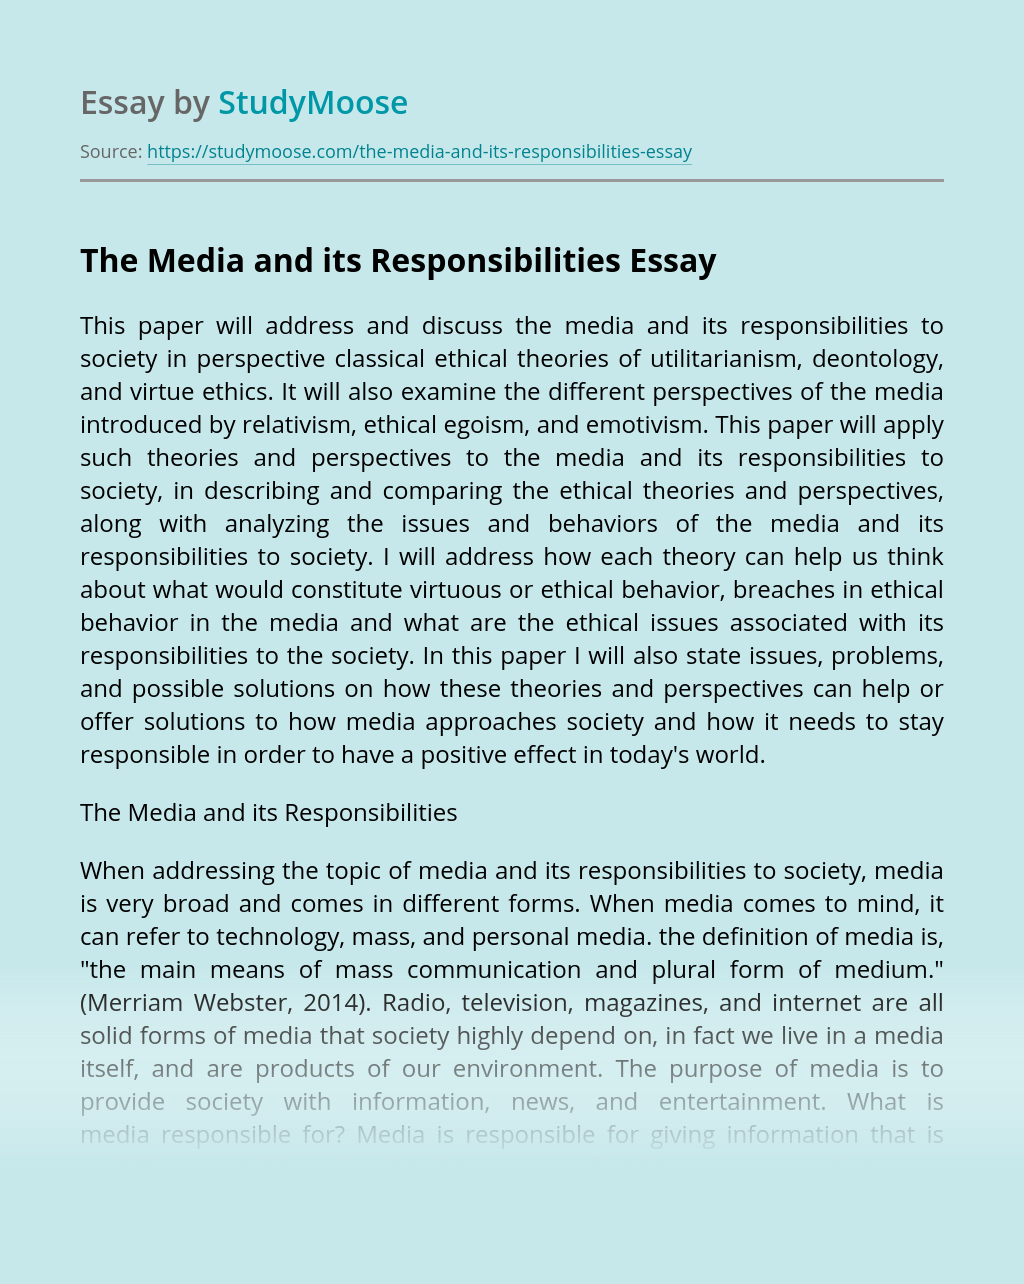 The Media and its Responsibilities